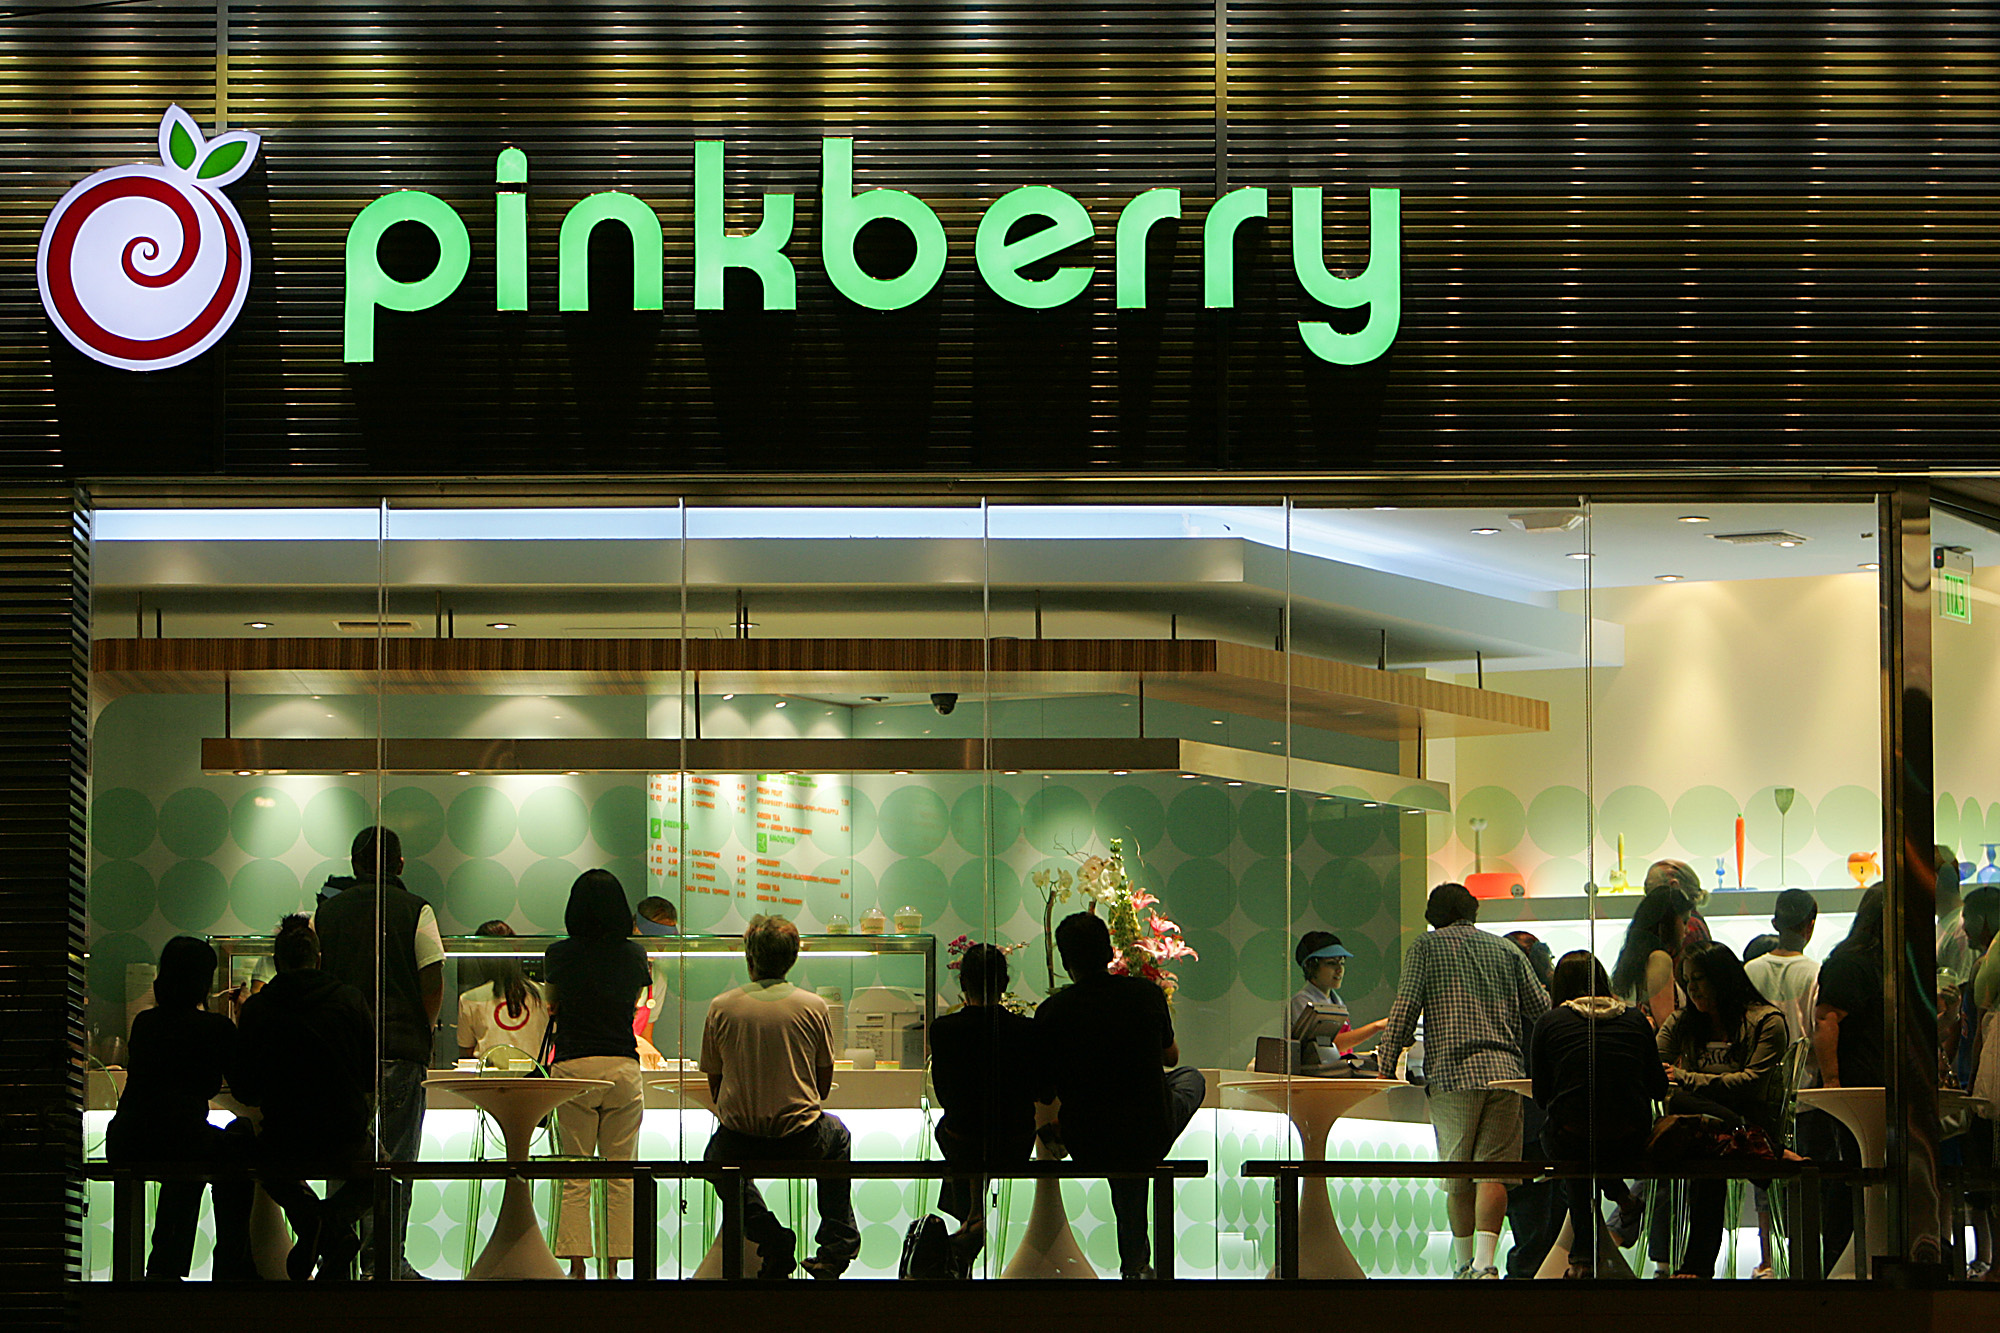 The popular and controversial Pinkberry frozen yogurt (?) store in Silverlake, Sunday, June 24, 200